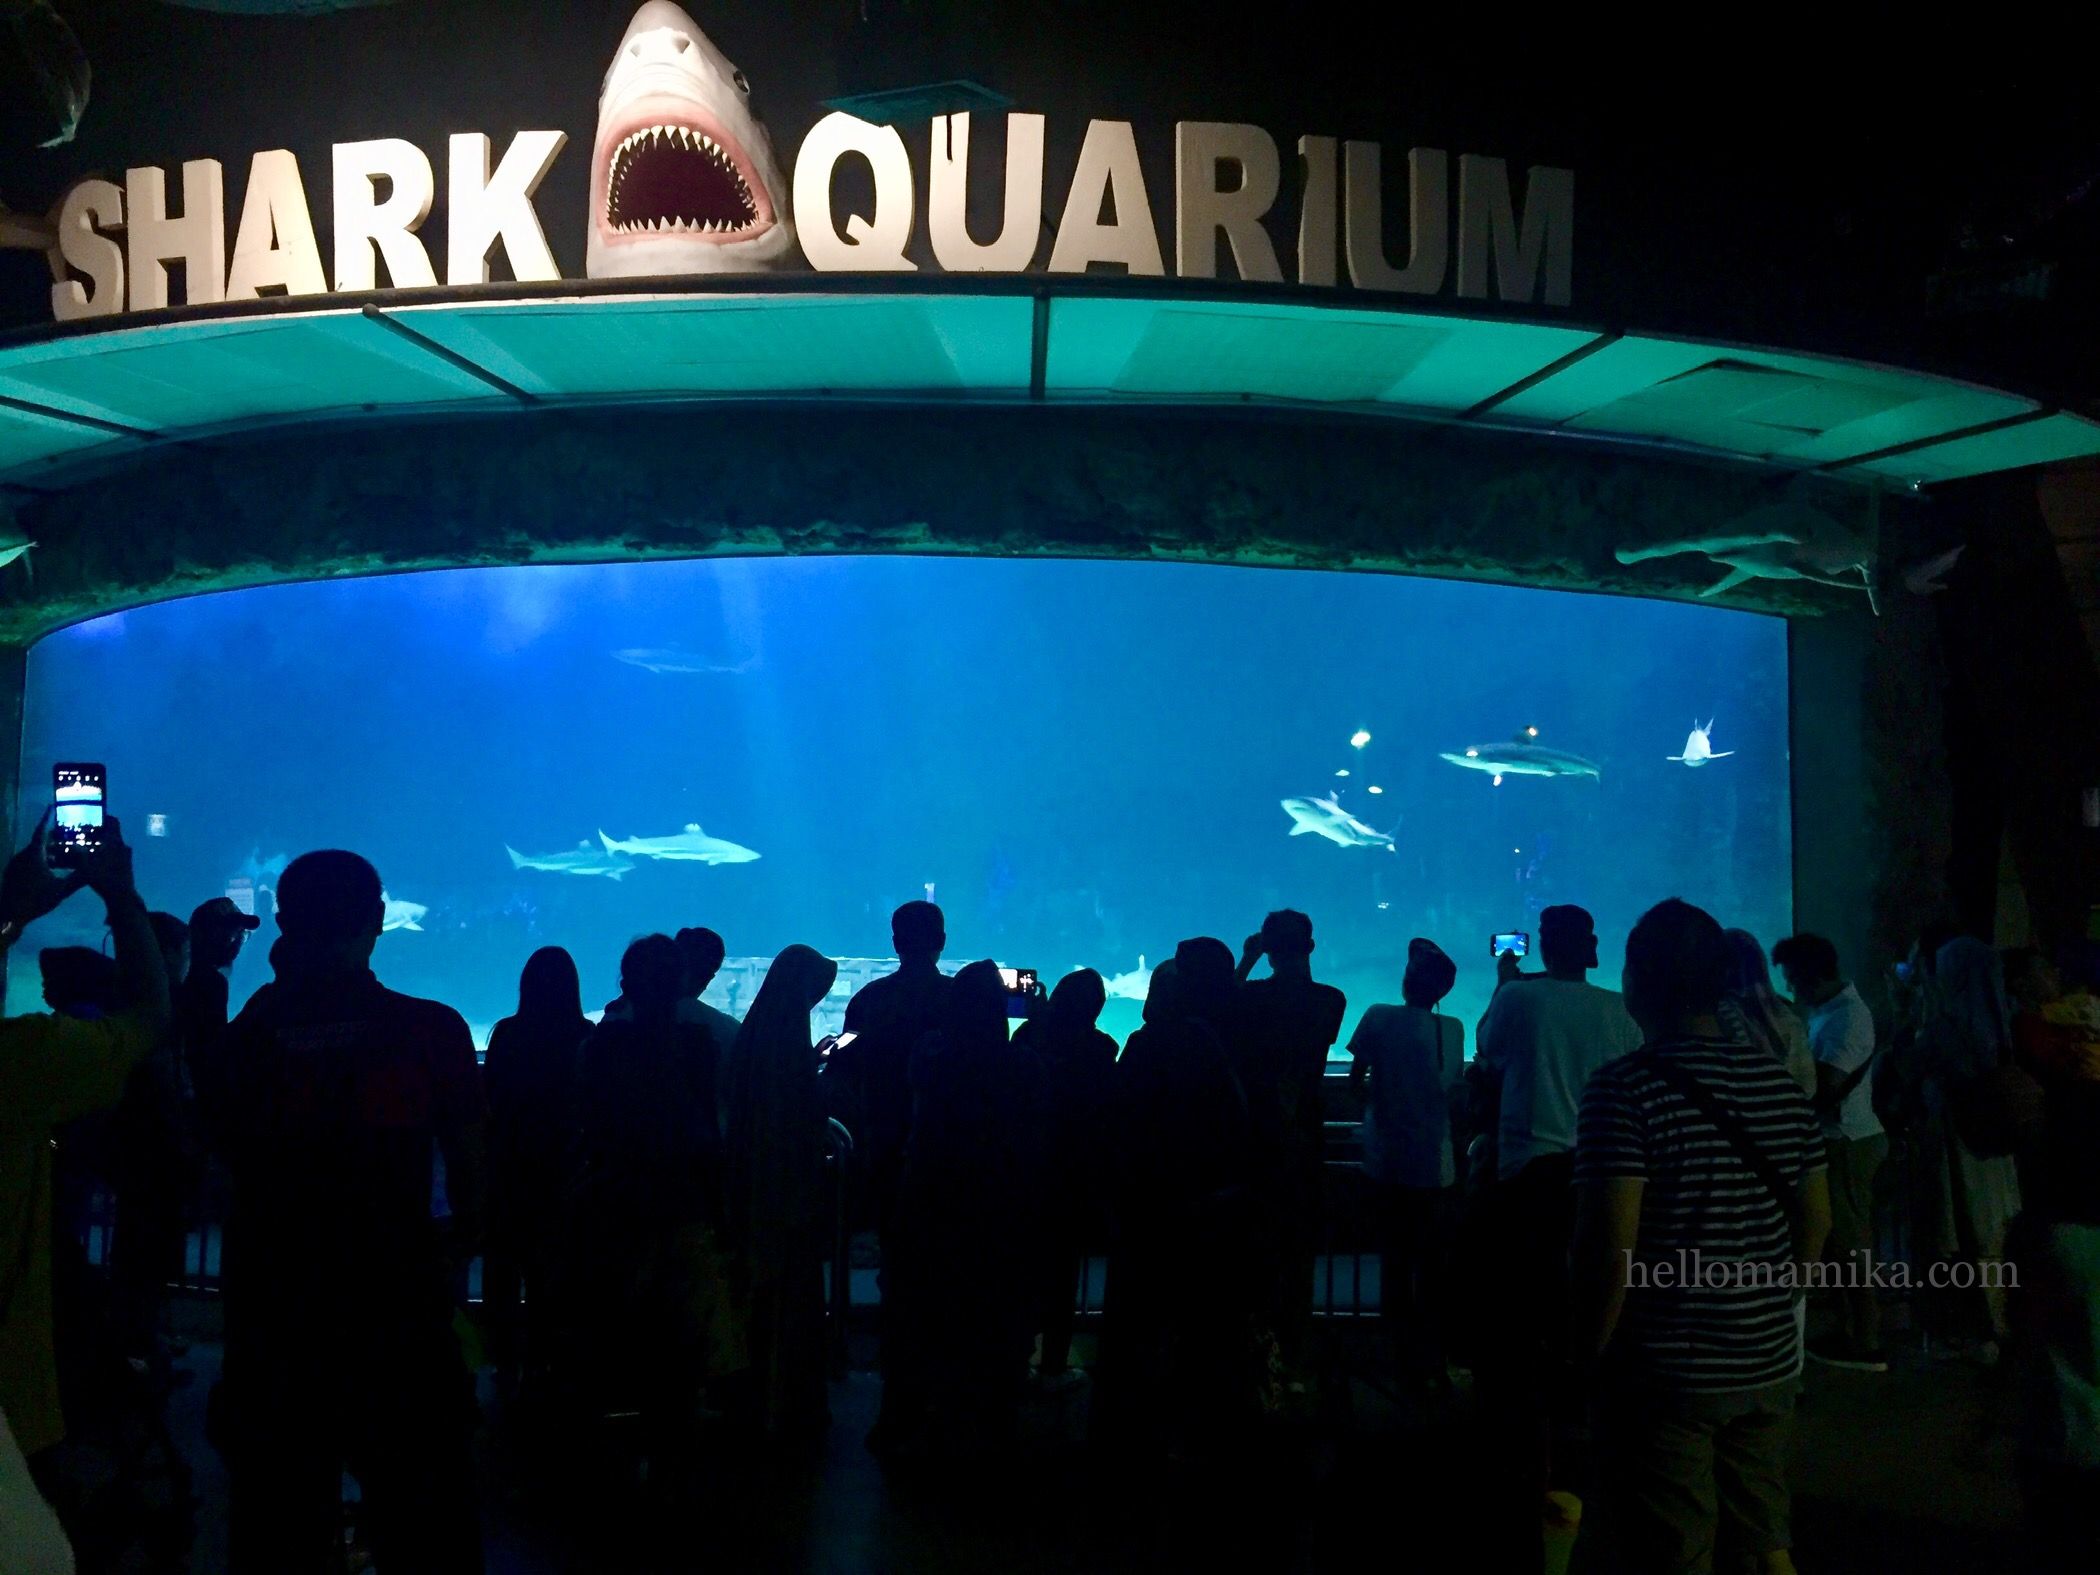 Shark aquarium seaworld ancol